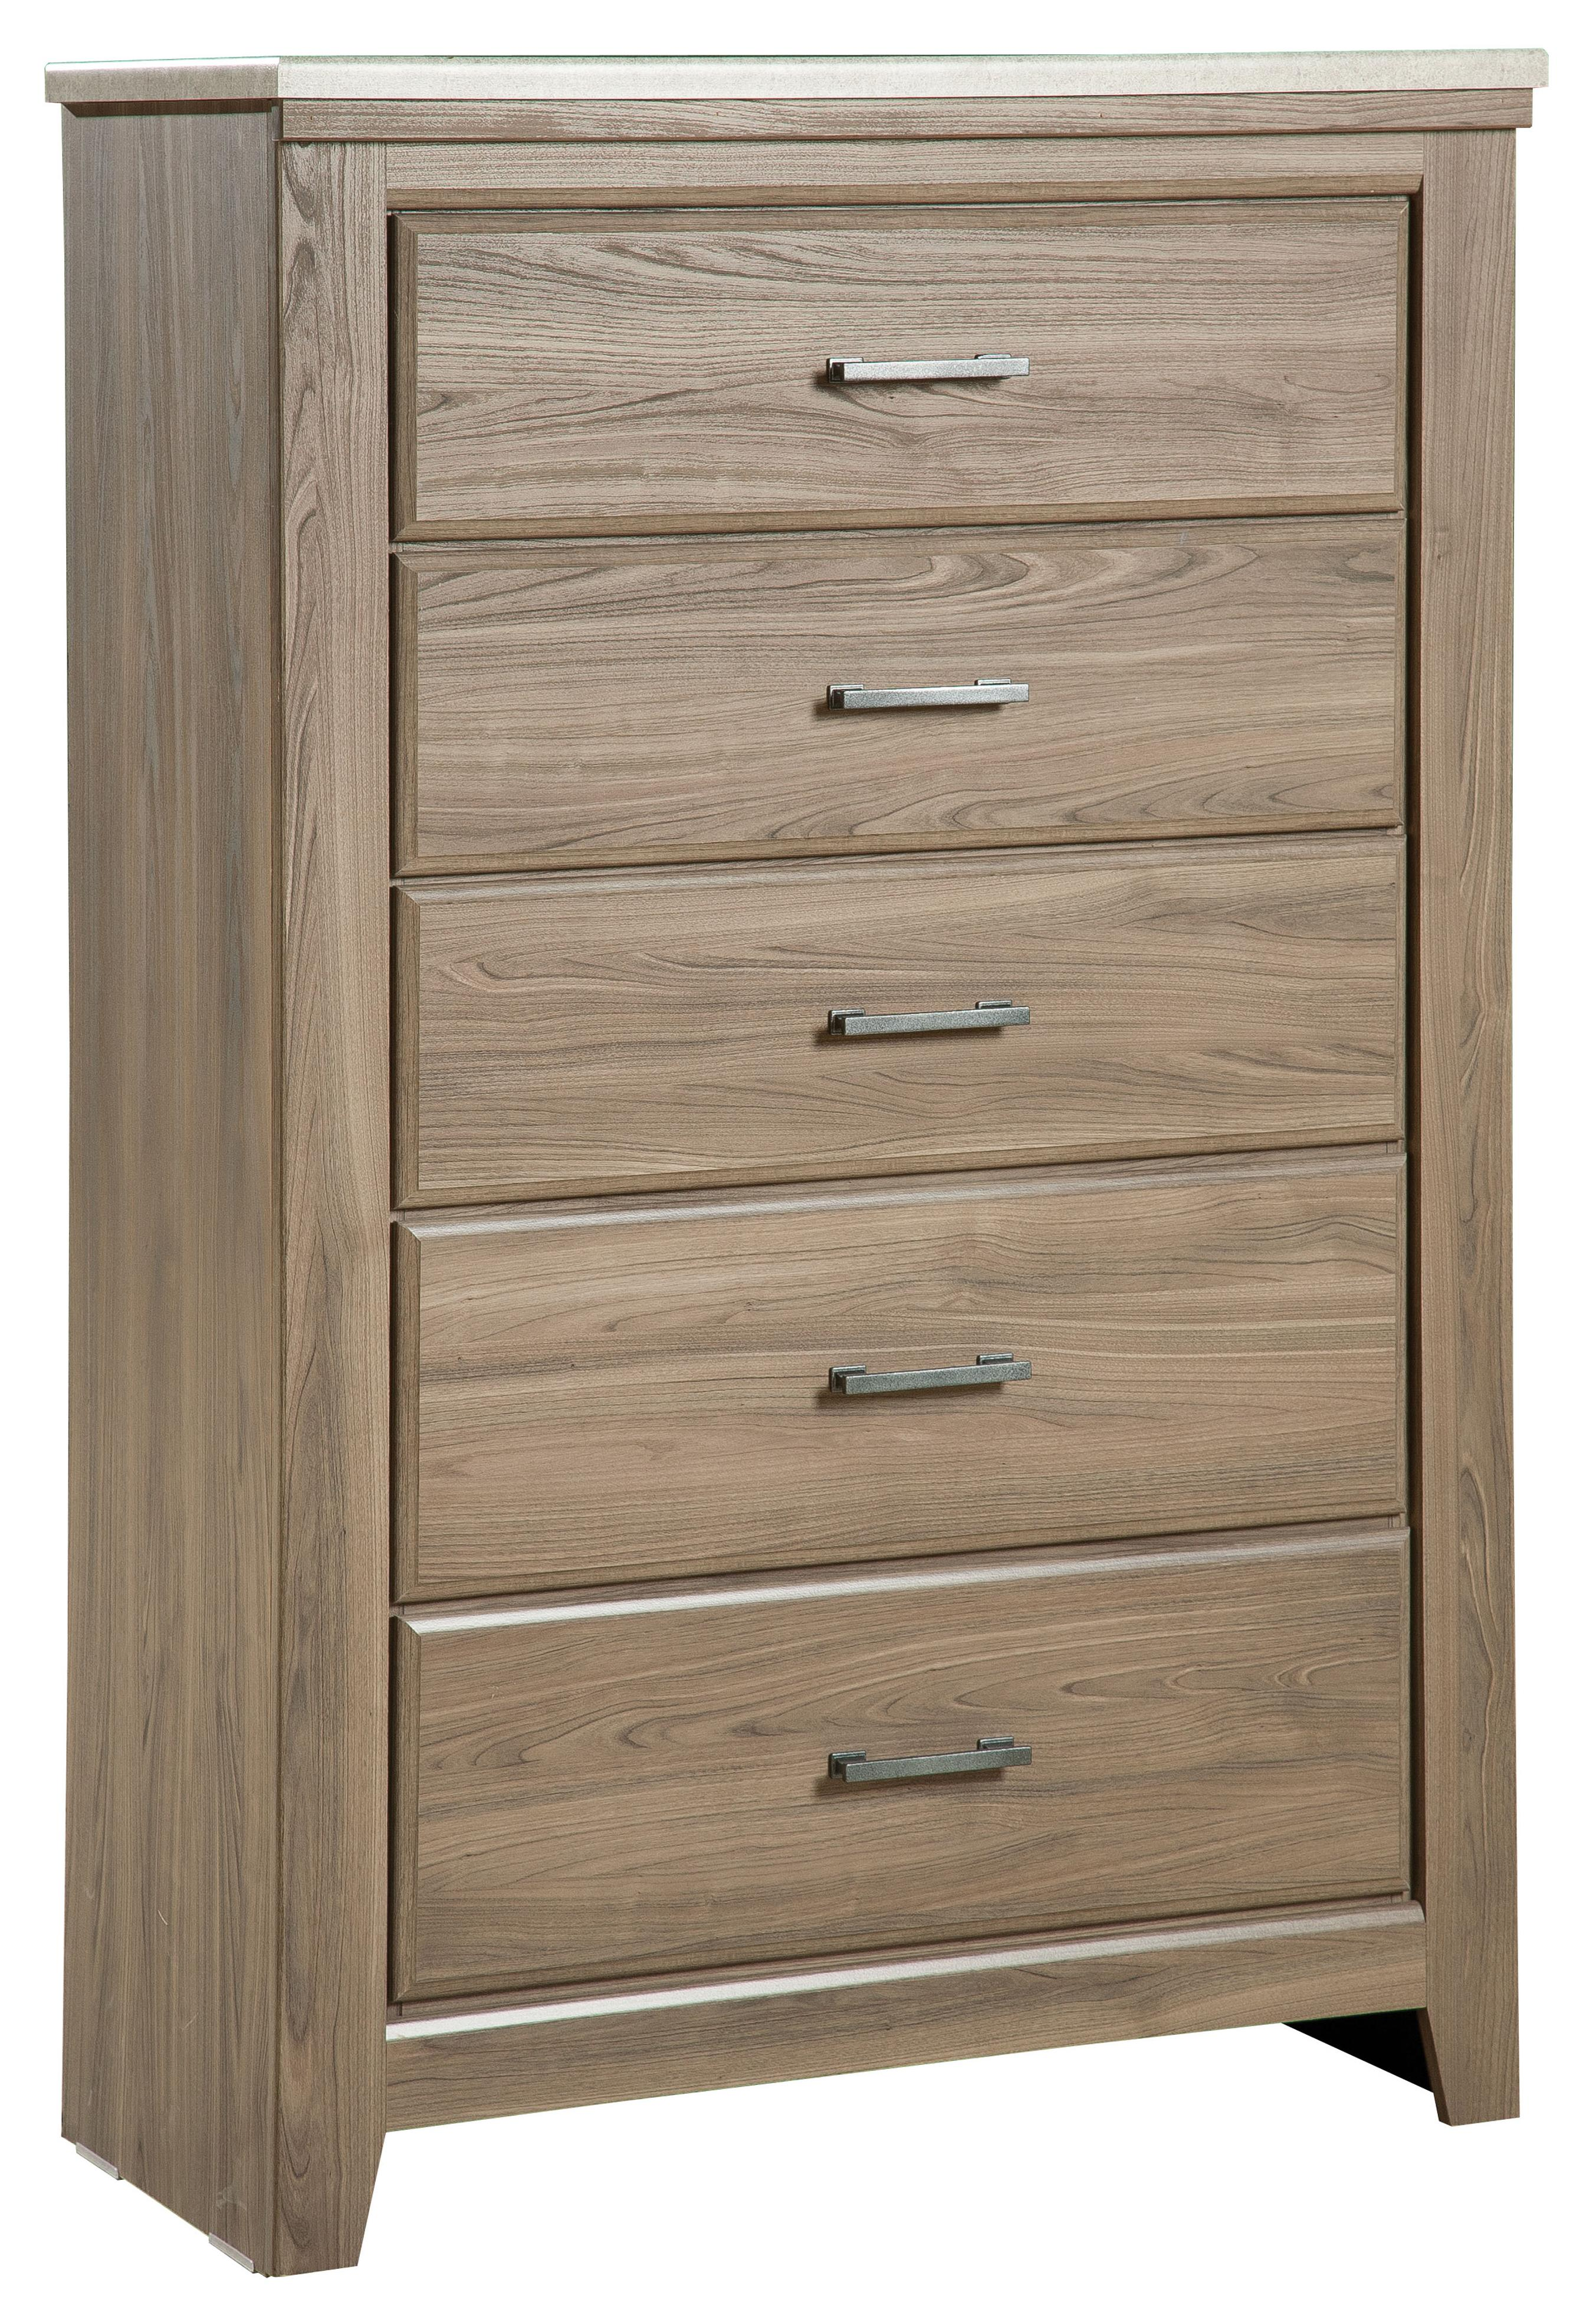 Vendor 855 Stonehill 5 Drawer Chest - Item Number: 69405